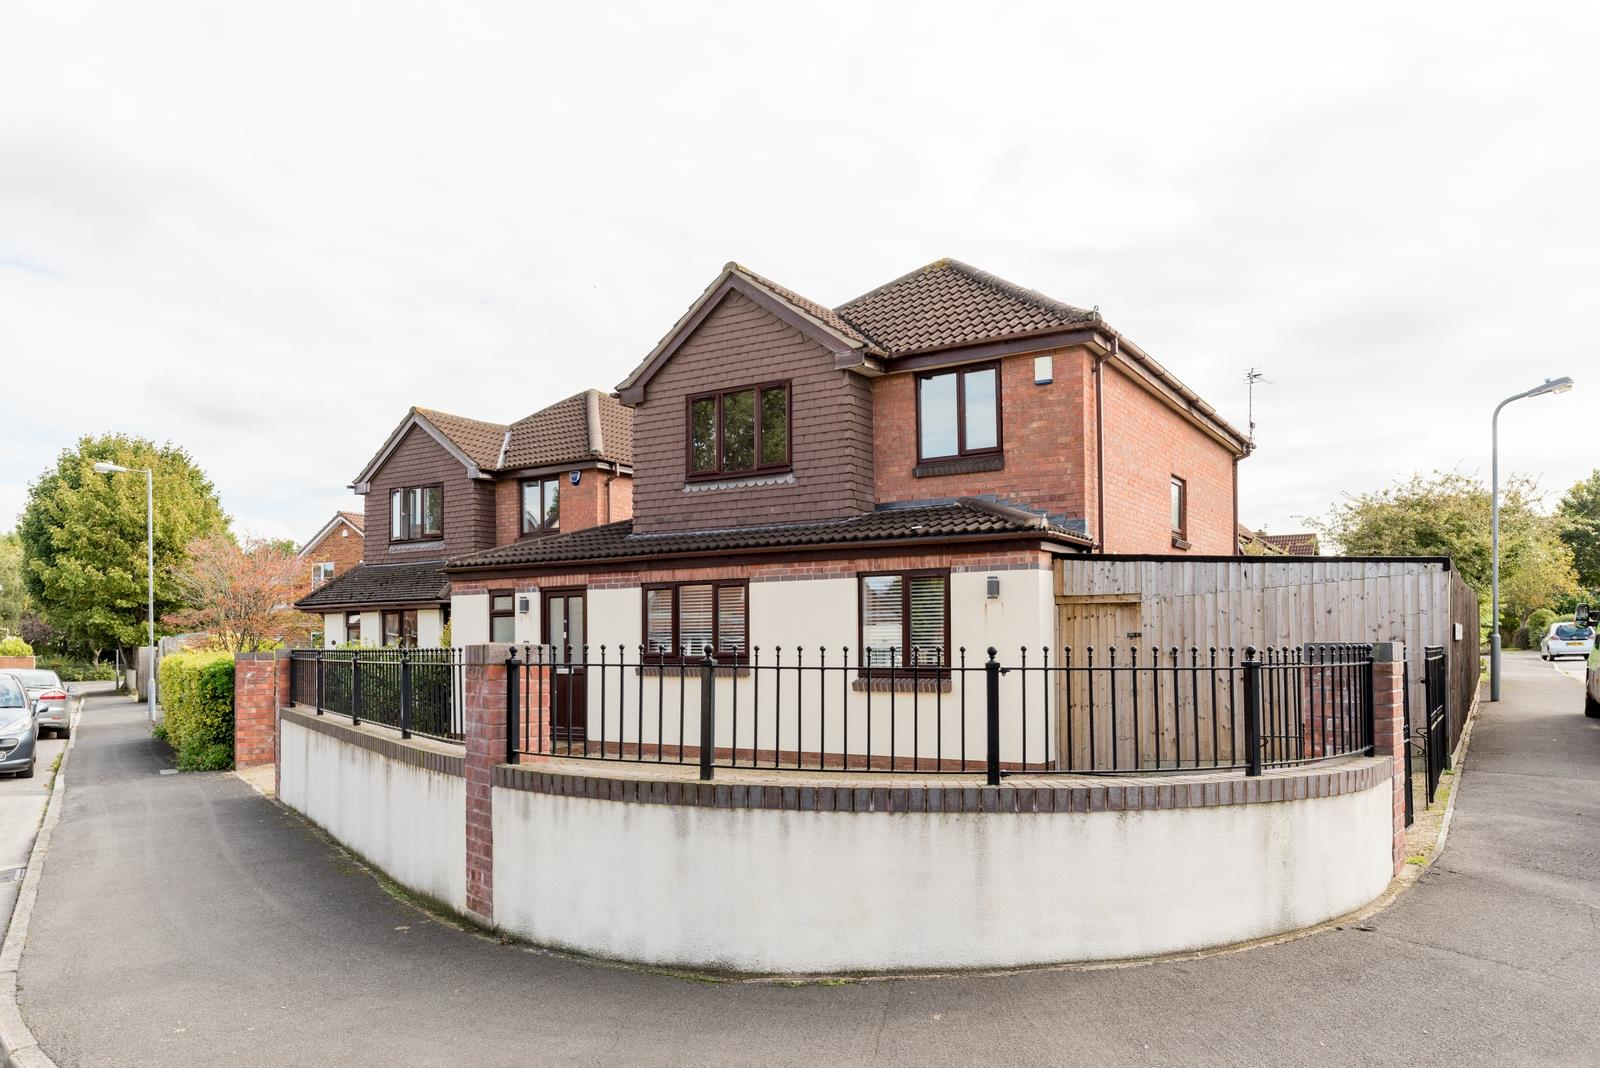 3 bed house for sale in Fallodon Way, Bristol  - Property Image 16